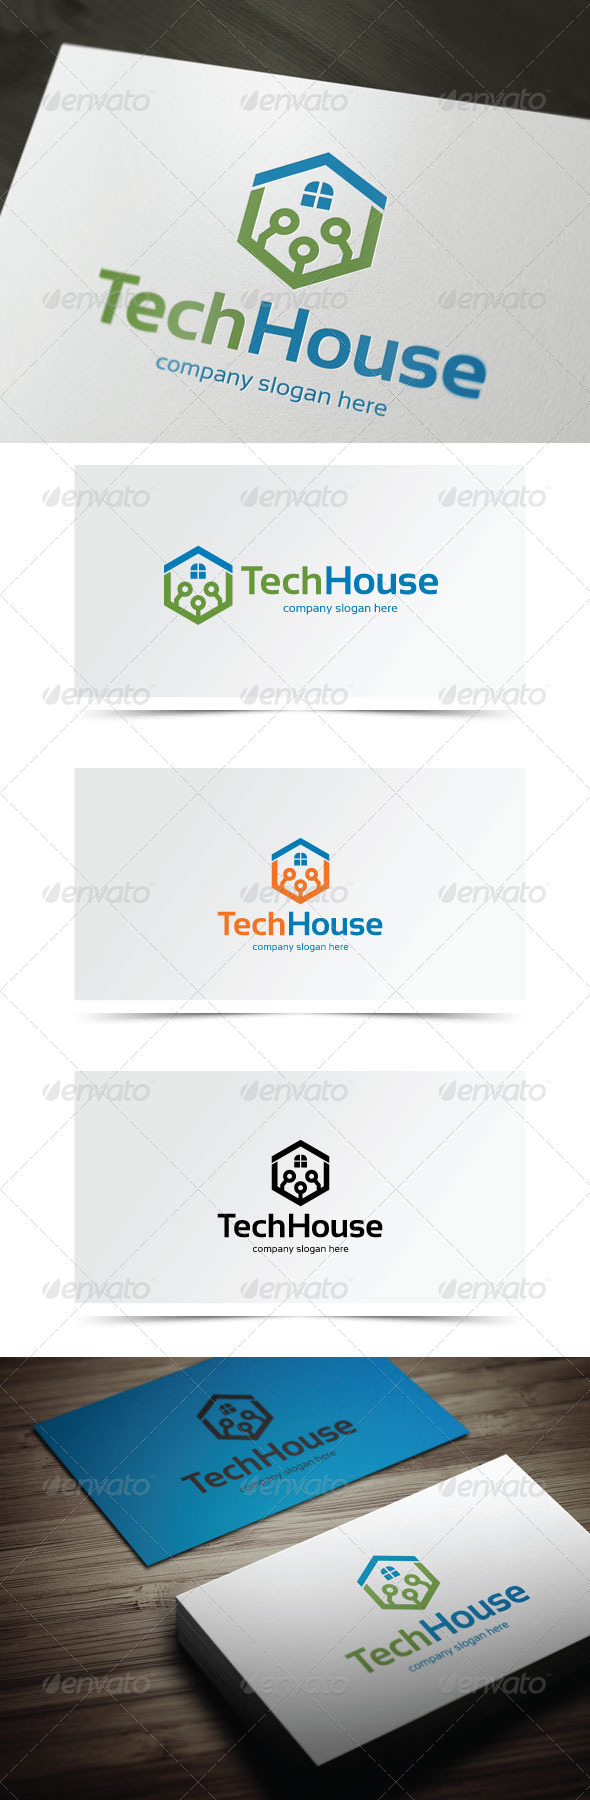 GraphicRiver Tech House 6124343